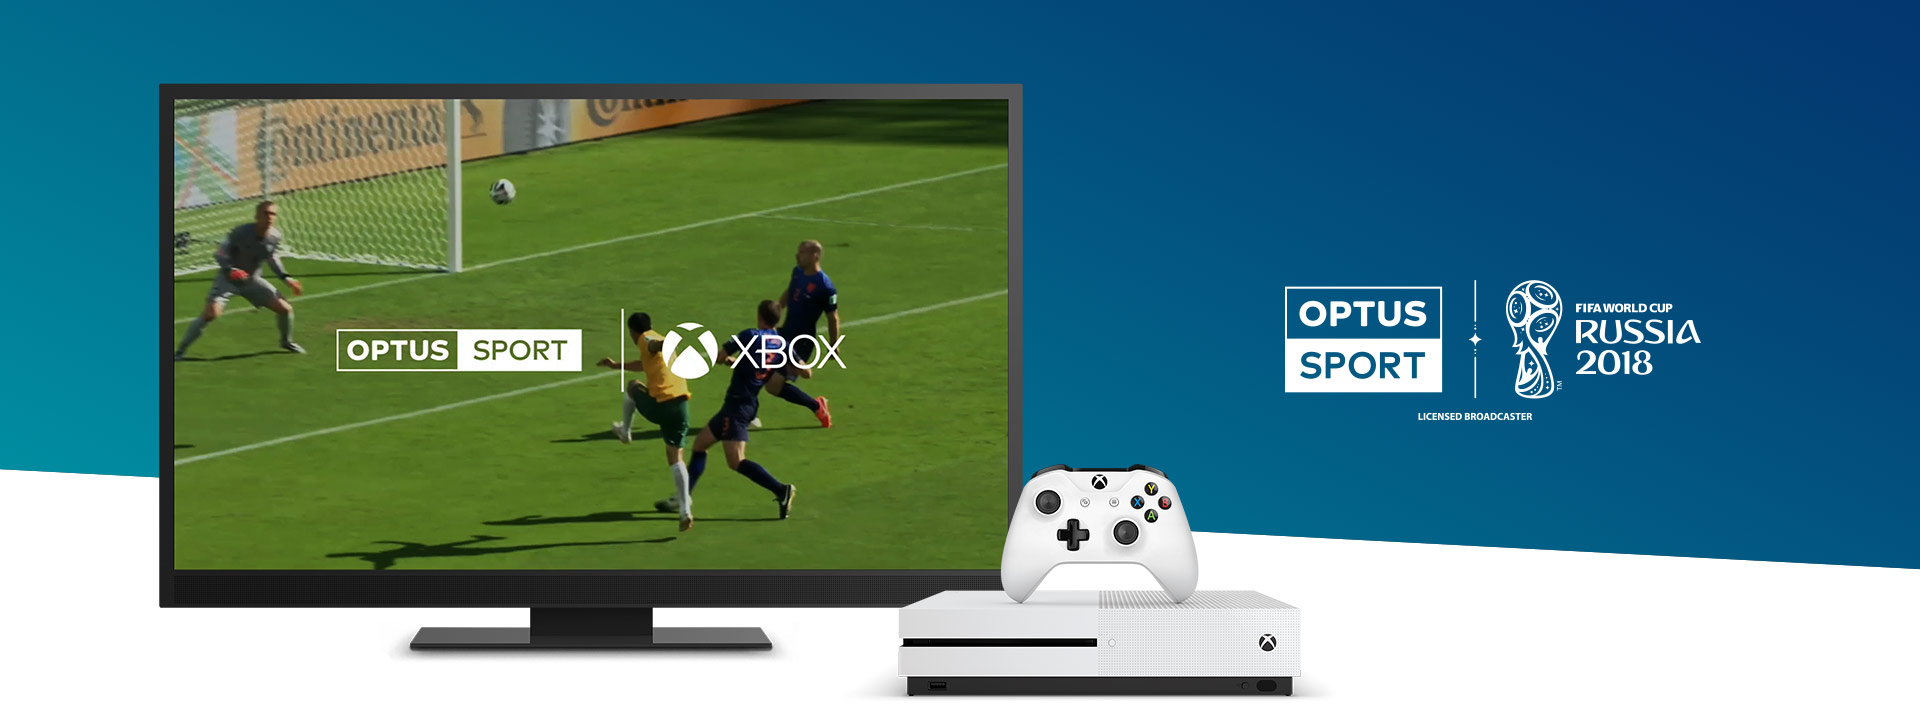 Optus on Xbox One - Optus Sport logo and game scene on TV screen behind a console